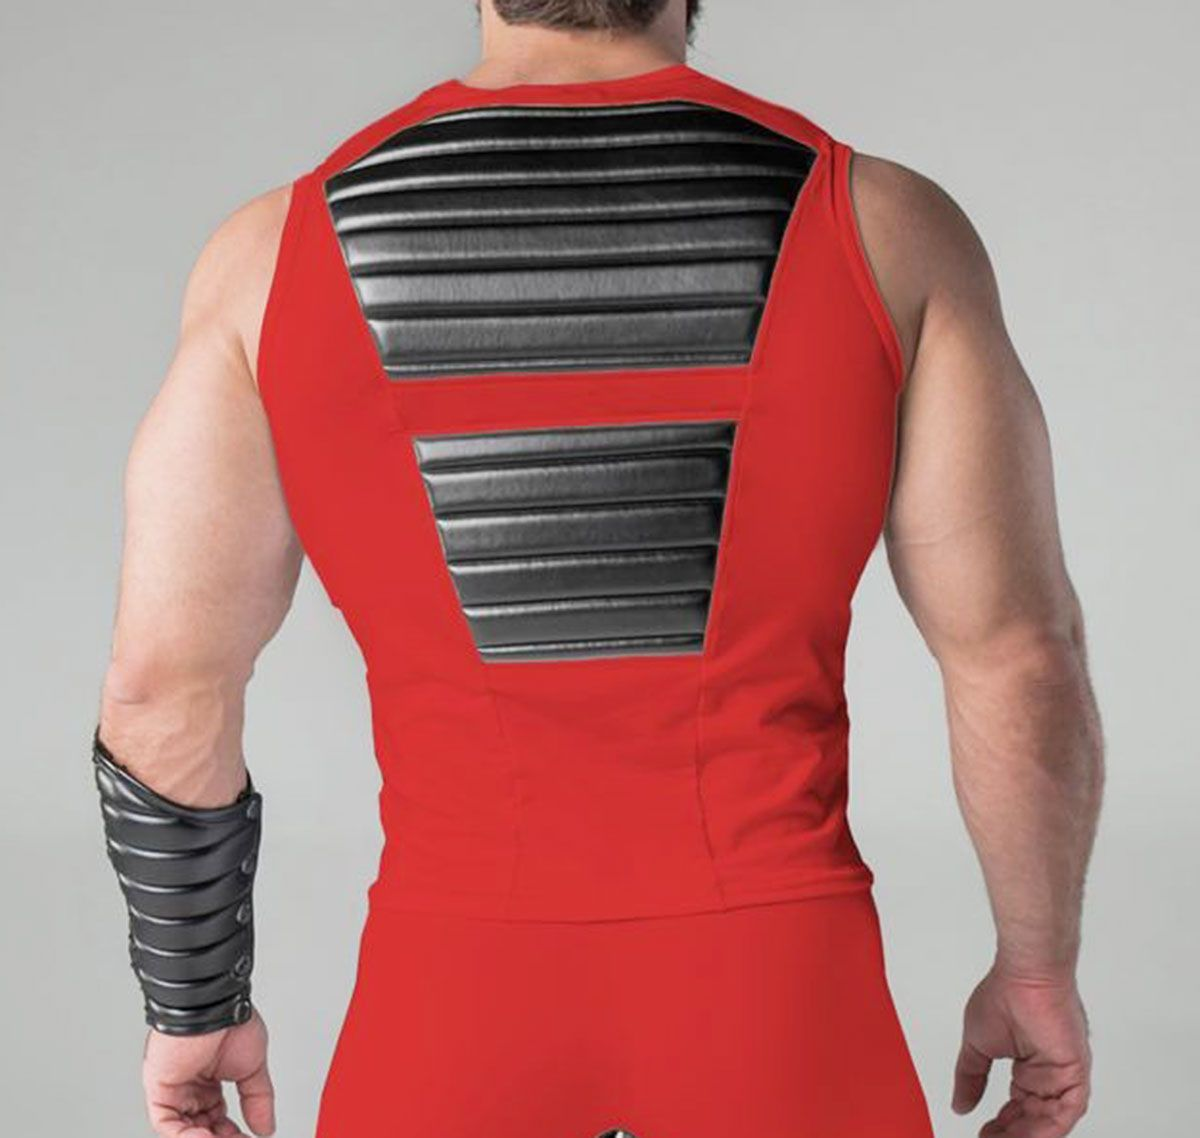 MASKULO fetish Tank top ARMORED. TP20-10, red